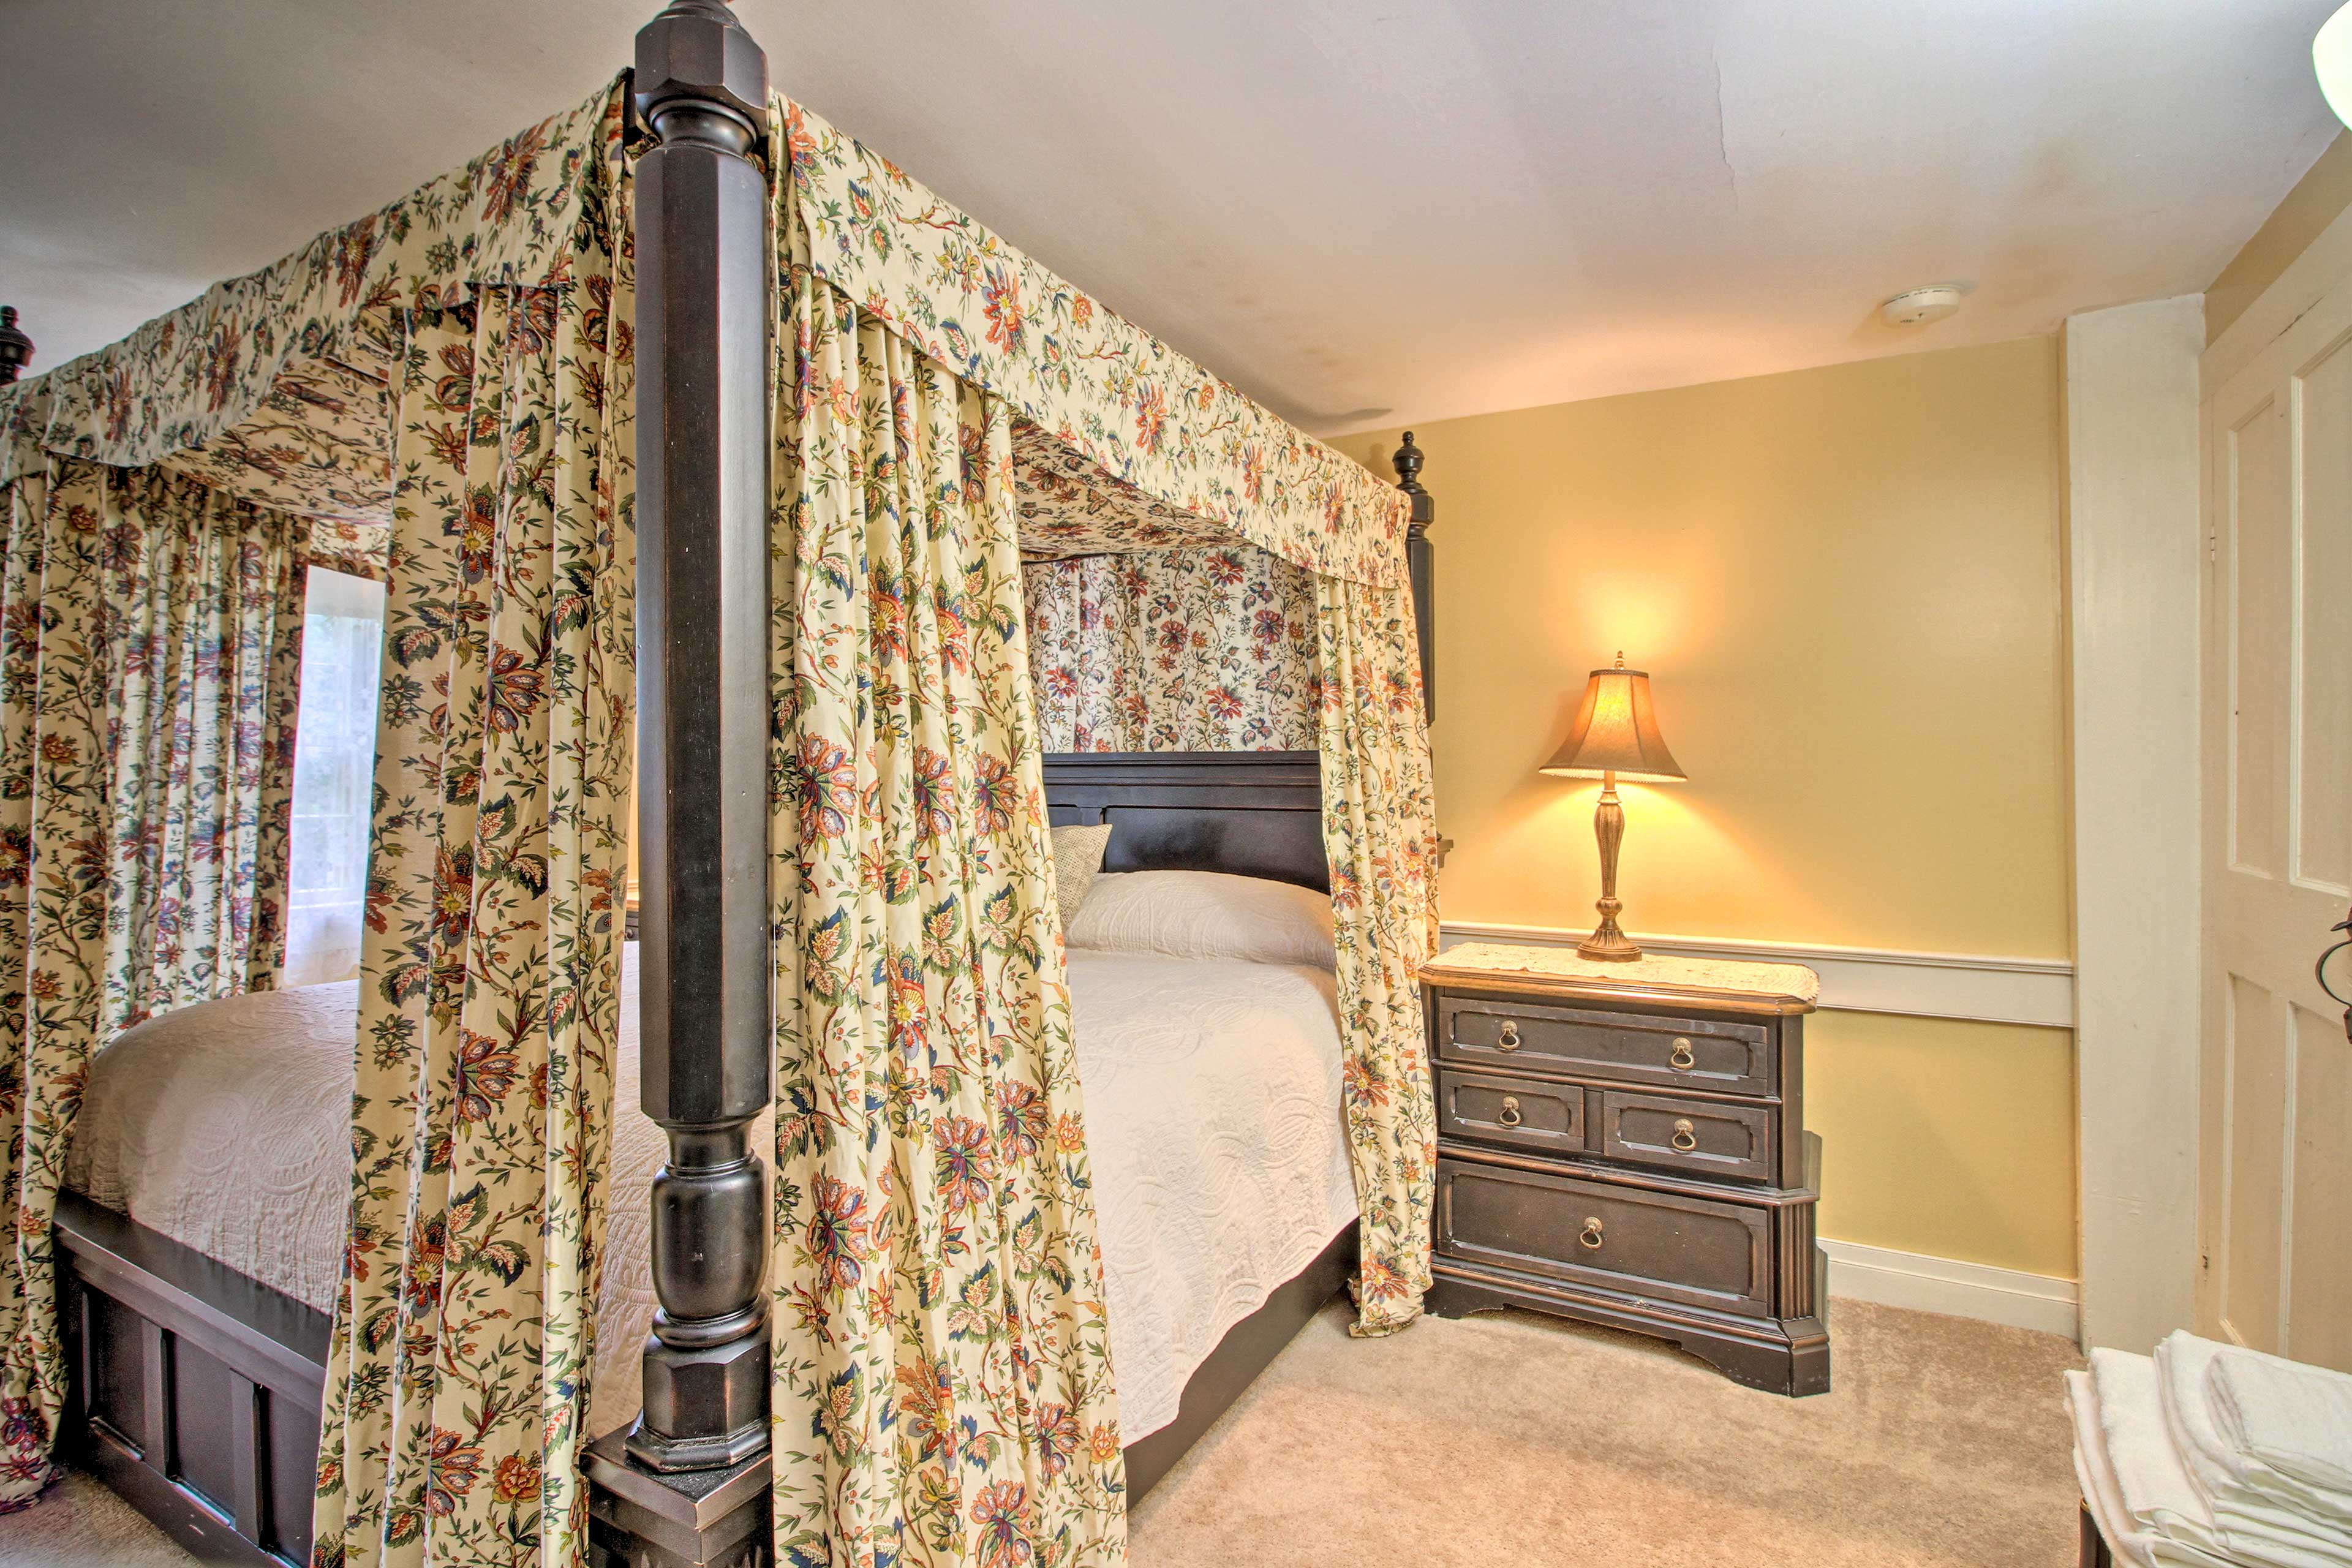 Bedroom 1 features a plush king bed.